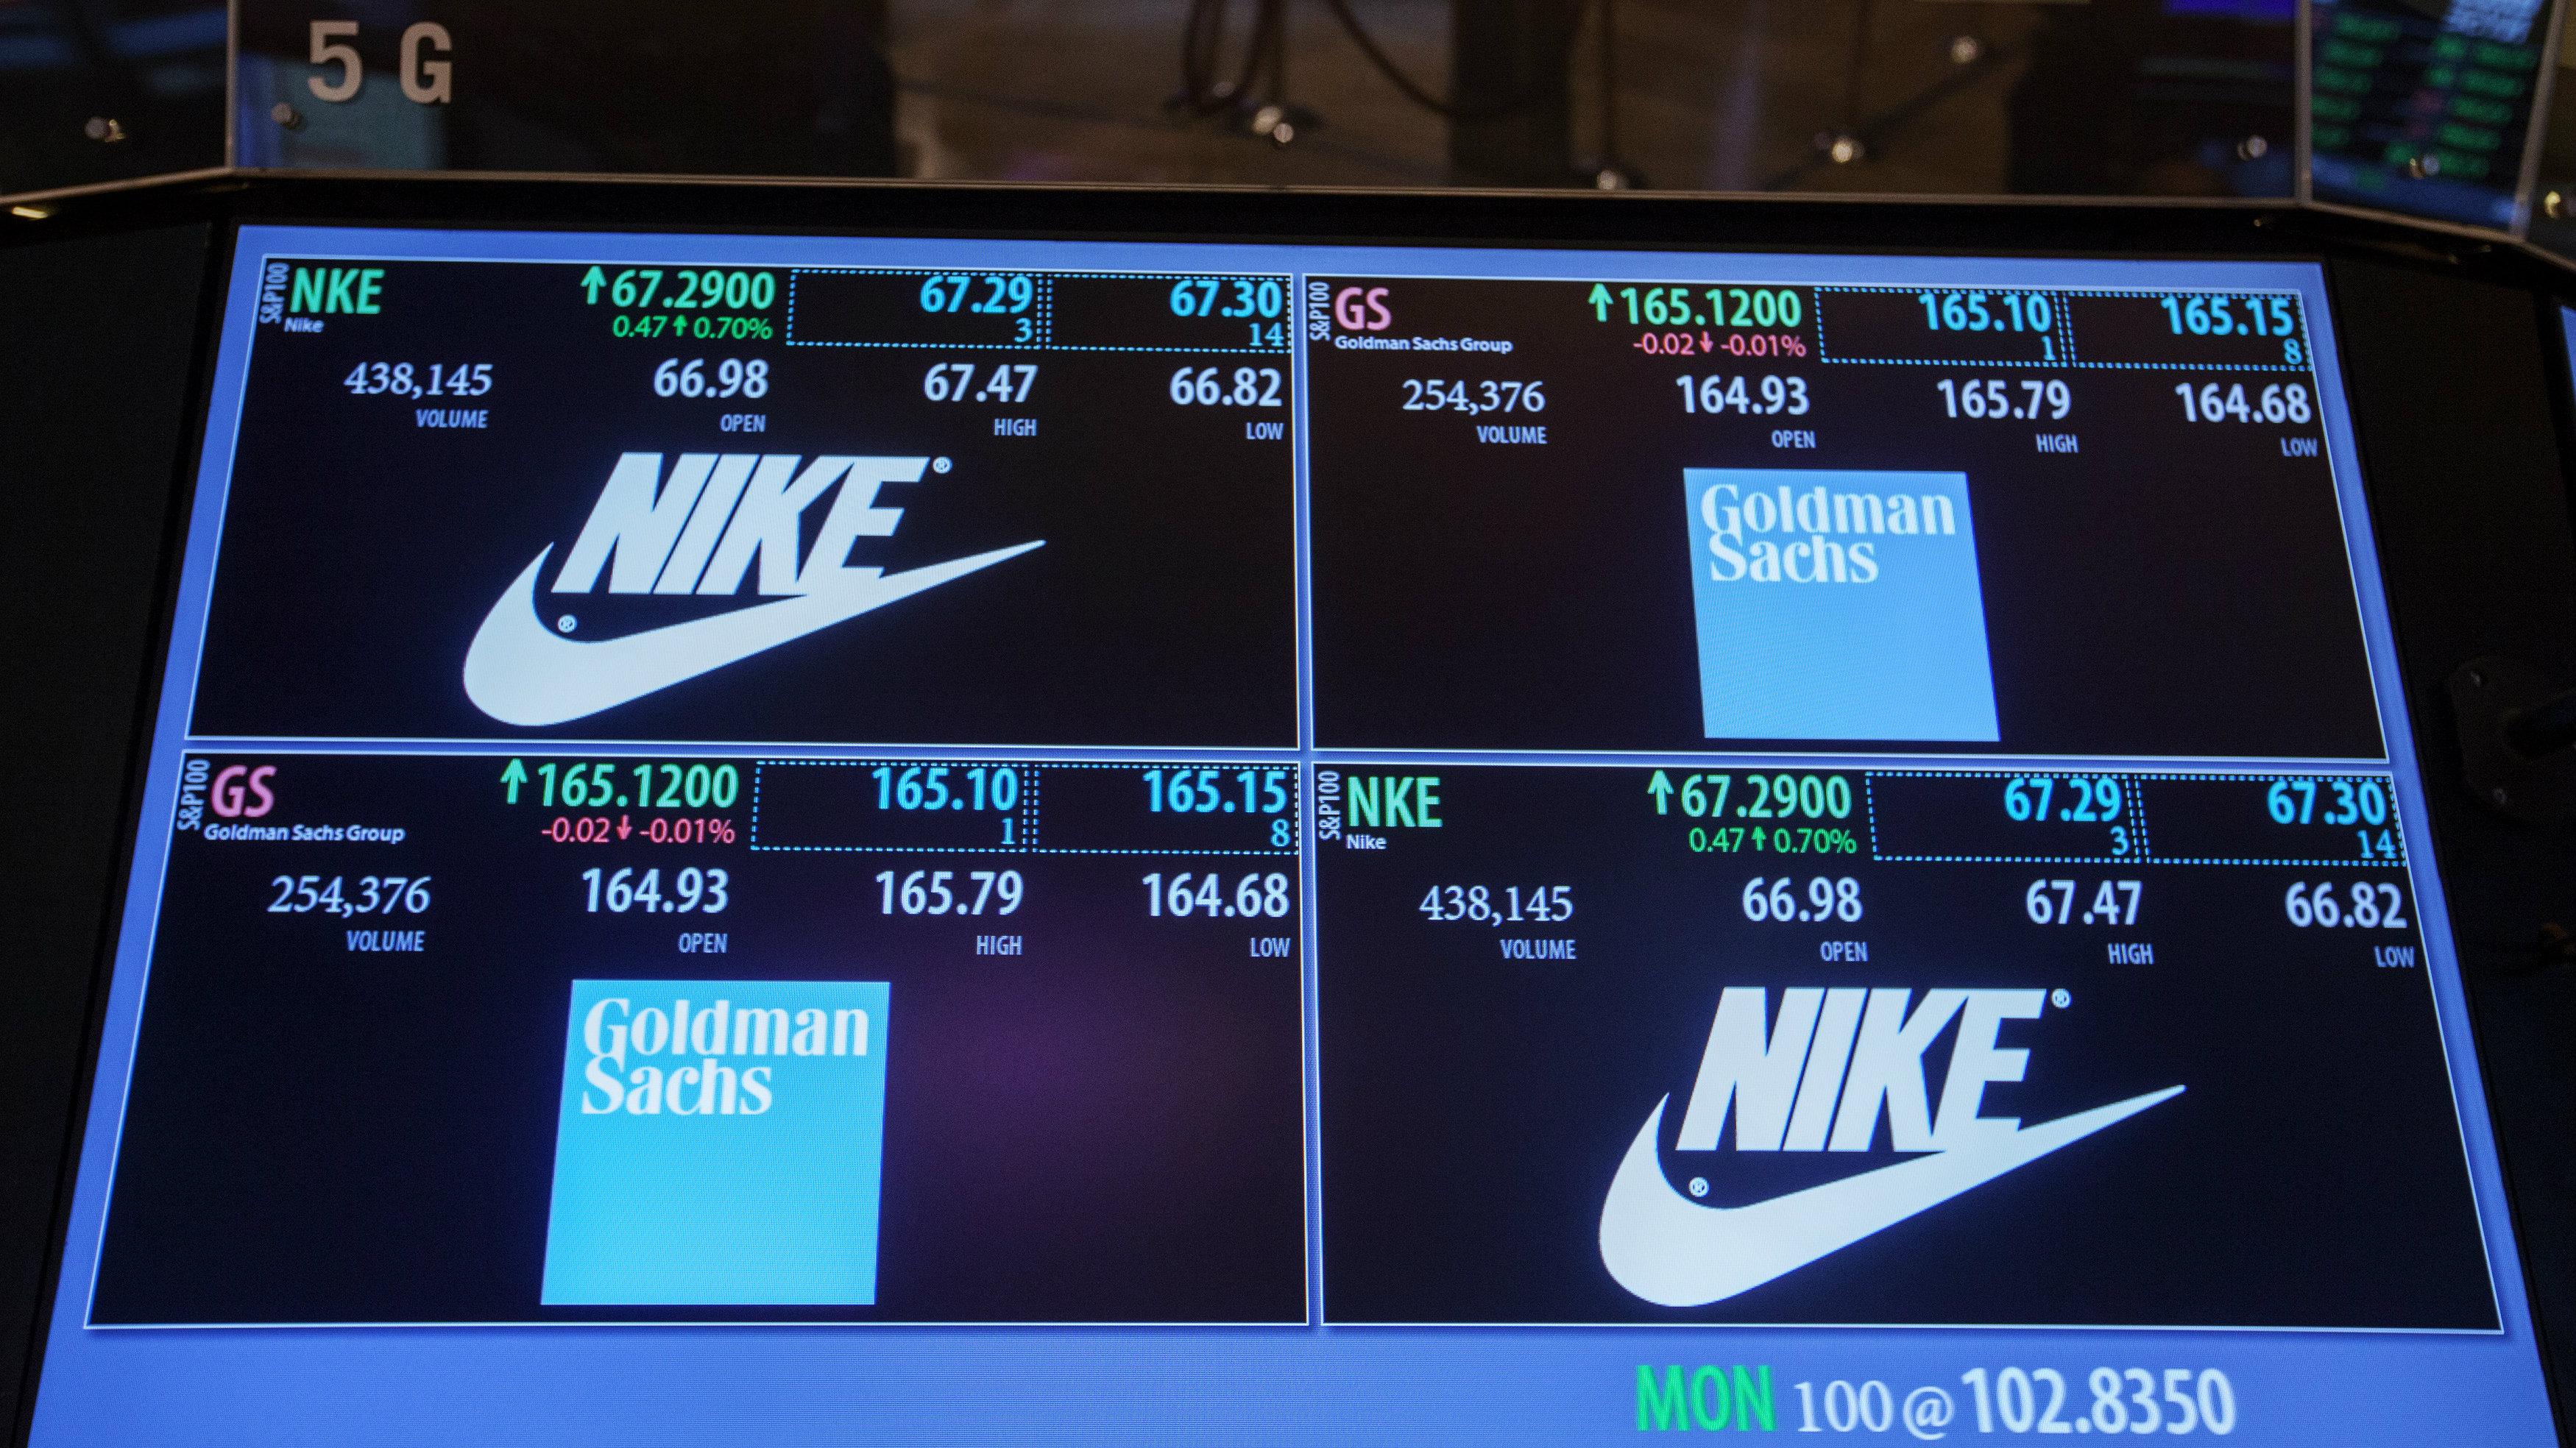 The Goldman Sachs and Nike corporate logos are displayed on a post above the floor of the New York Stock Exchange, September 11, 2013. In the biggest shake-up of the Dow Jones industrial average in nearly a decade, Goldman Sachs, Visa and Nike will join the storied 30-stock index, with Bank of America, which just two years ago was the largest U.S. bank by assets, one of the names exiting the Dow. REUTERS/Lucas Jackson (UNITED STATES - Tags: BUSINESS)